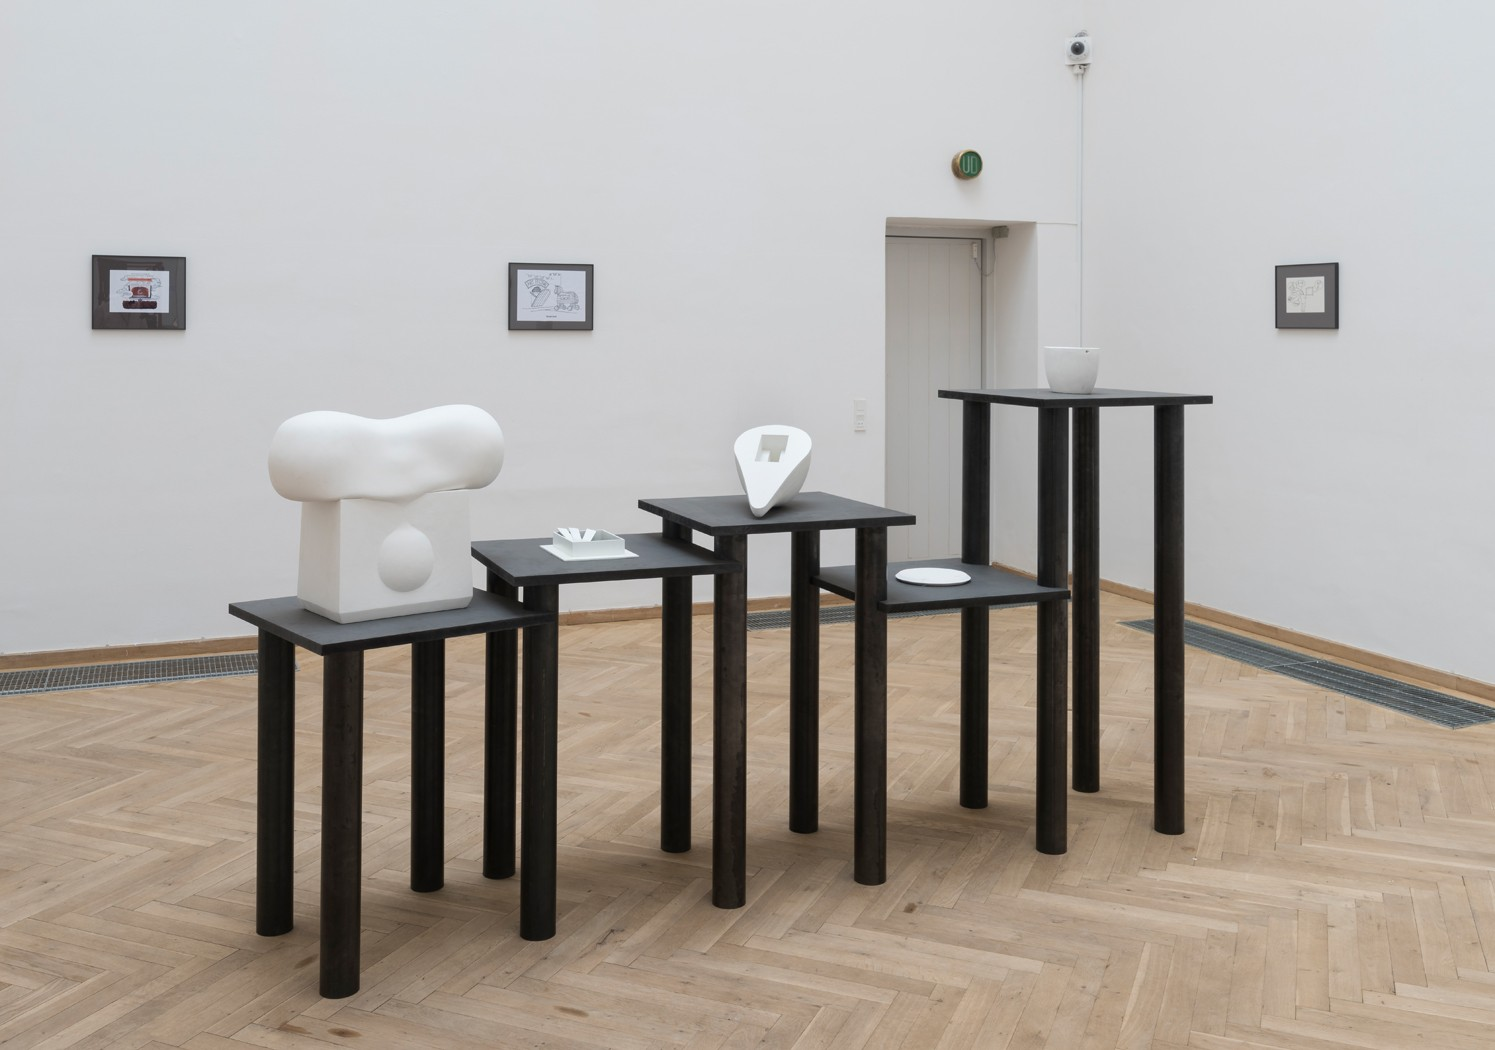 Afgang 2017 Det Kongelige Danske Kunstakademi</br>Theodor Walldius, from left to right: 'Shared, Imprisoned stroke thrusts back, Double down, Harbinger, What ifs and what evs (elliptical syzygy)', Afgang 2017. Installation view Kunsthal Charlottenborg. </br>Foto: David Stjernholm